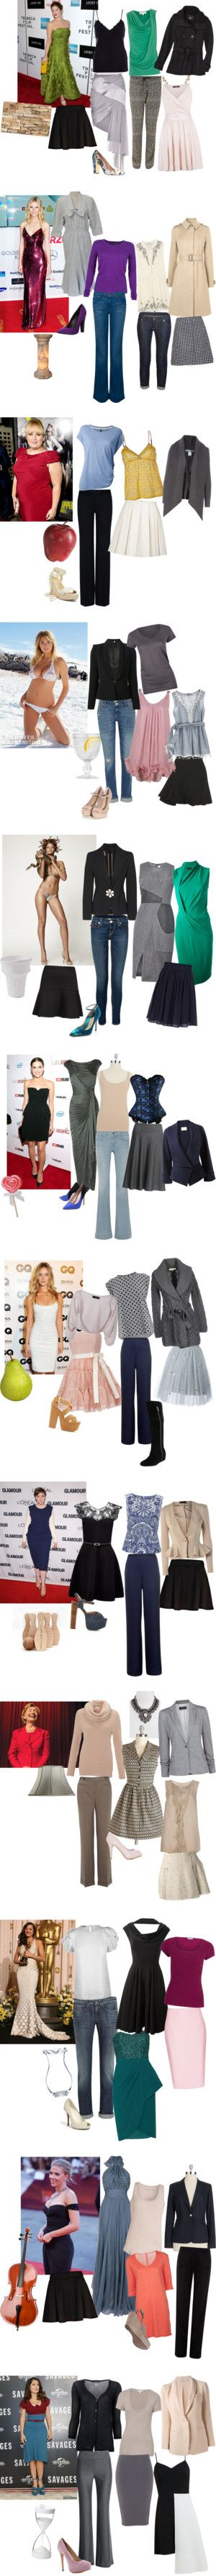 16 best trinny and susannah images on pinterest body forms body 16 best trinny and susannah images on pinterest body forms body shapes and fashion advice floridaeventfo Image collections